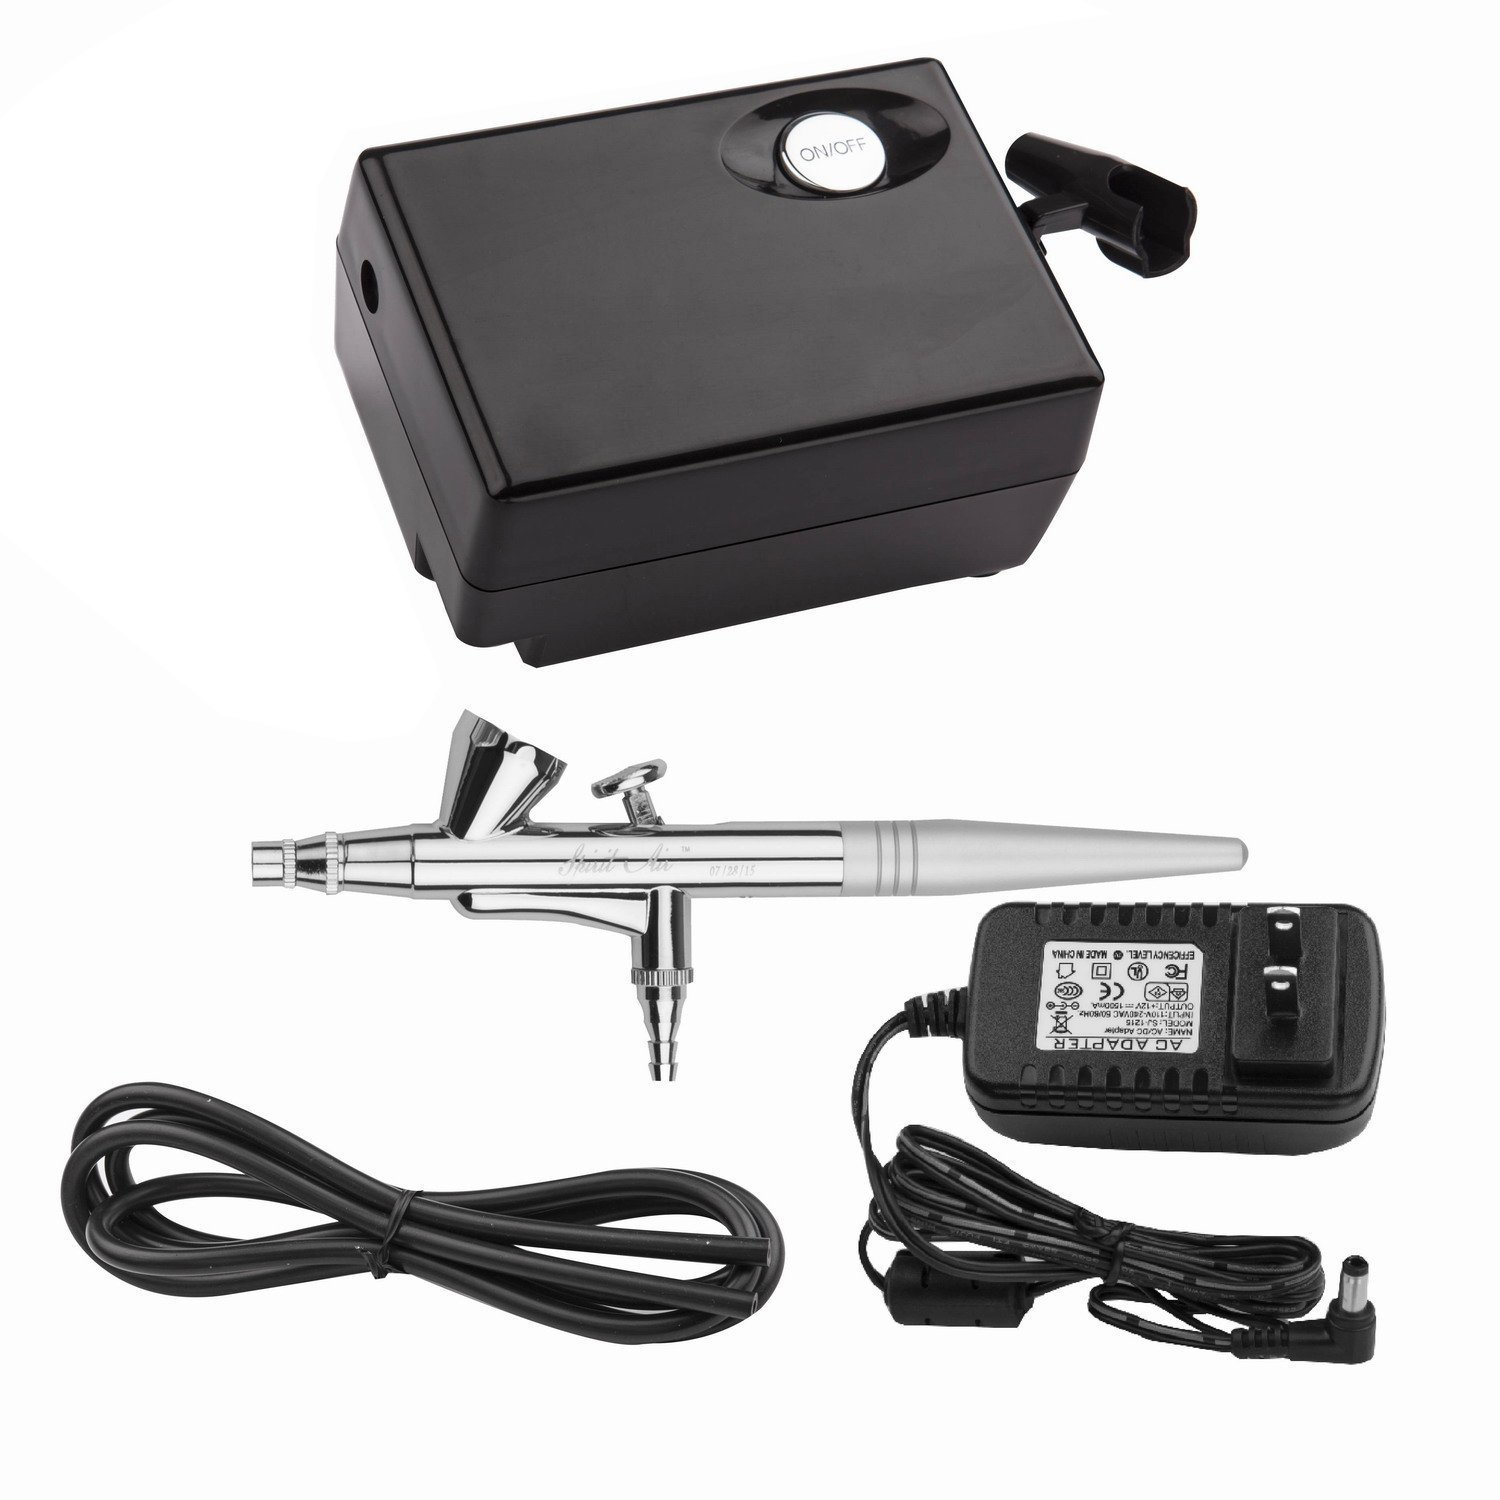 Yenny shop Airbrush Makeup Kit Beauty Special air Compressor Black Suit,Cosmetic Makeup Airbrush and Compressor System for Face, Nail, Temporary Tattoos, Cake Decorating